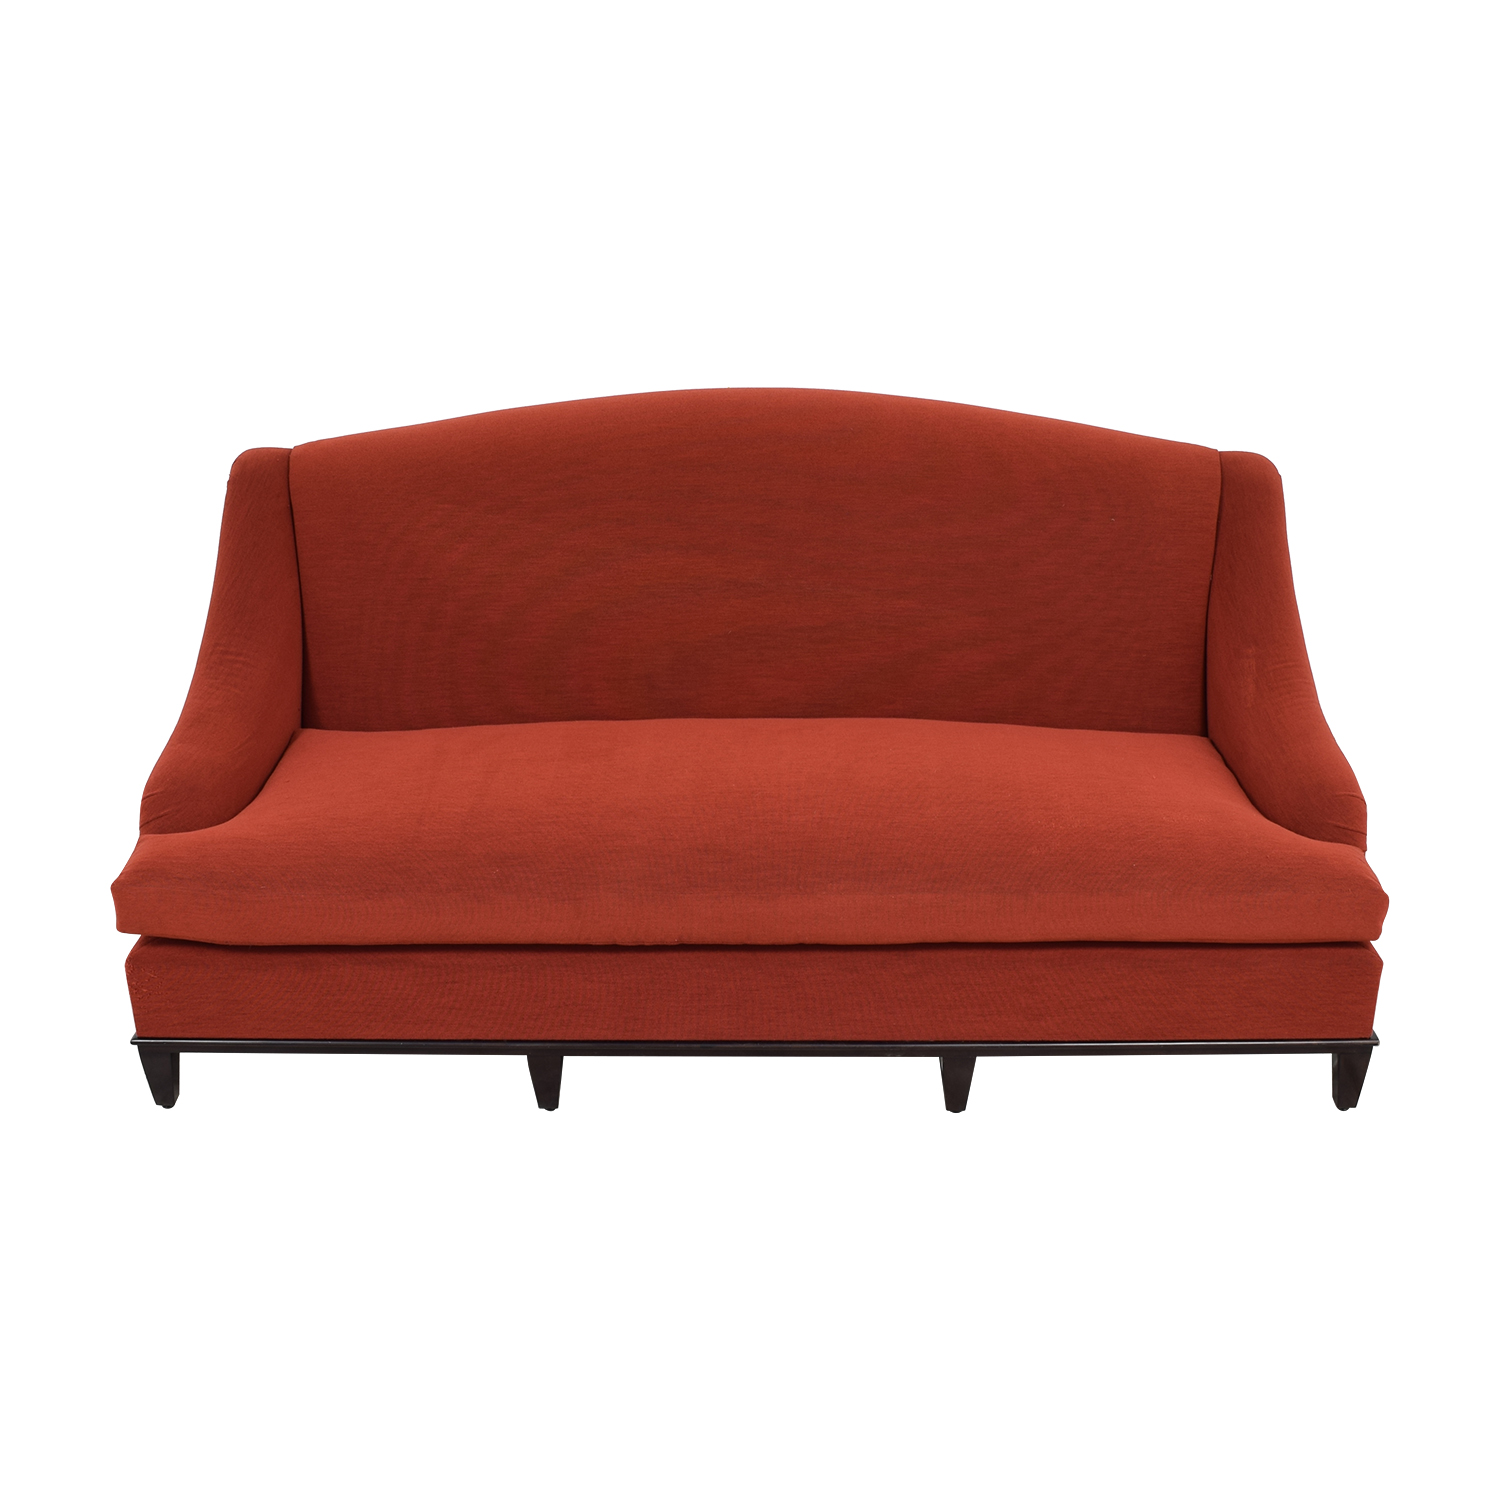 Furniture Masters Red Single Cushion Sofa